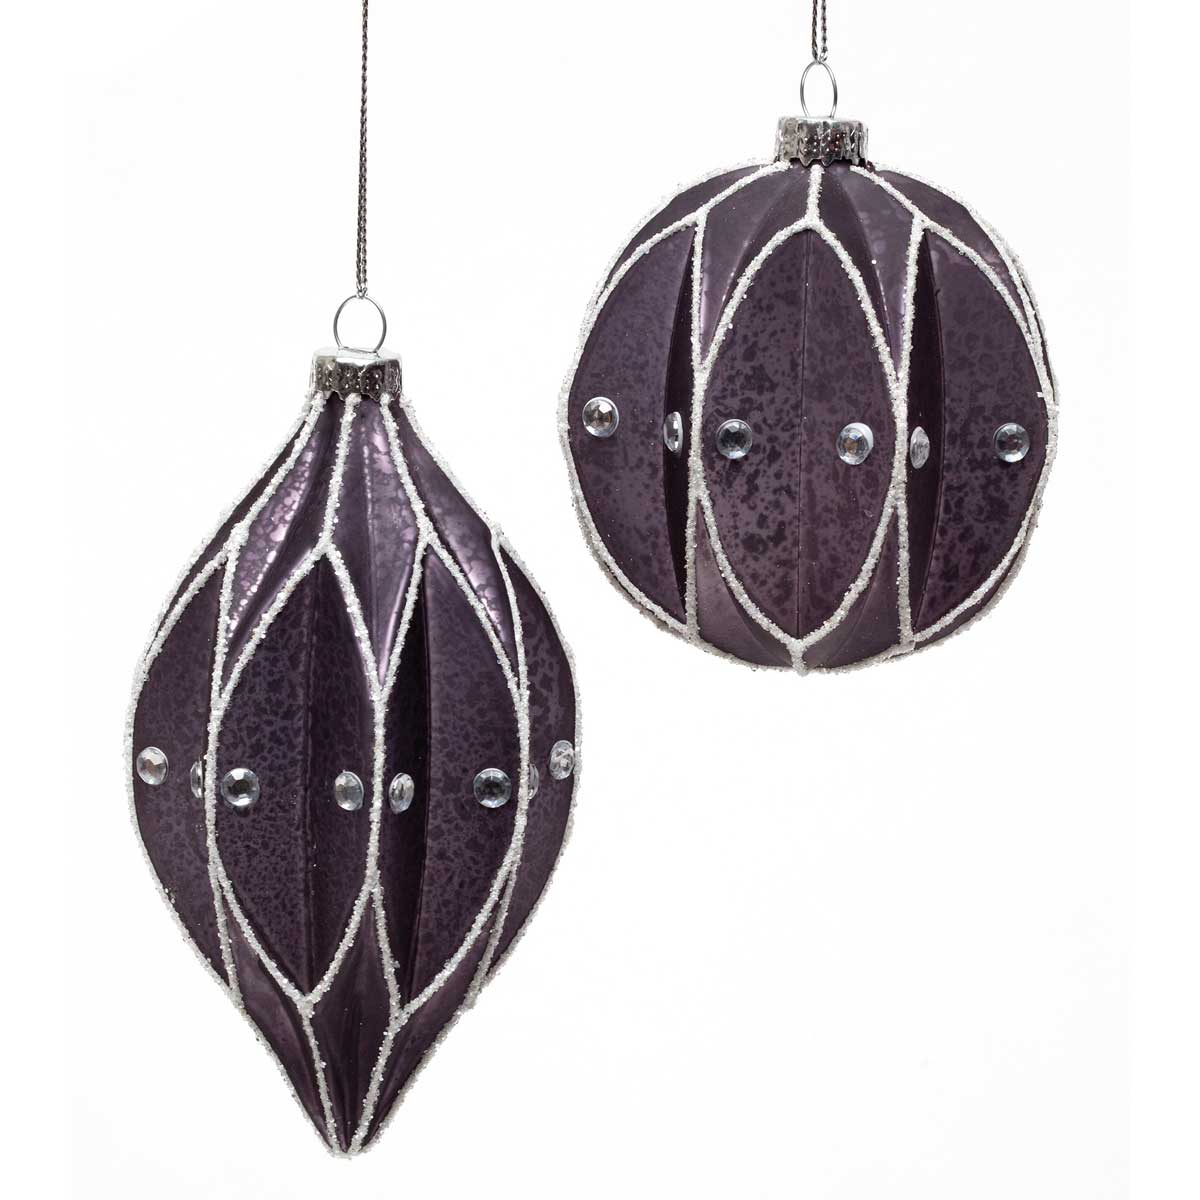 AMETHYST GLASS ORNAMENT WITH WHITE SWIRLS